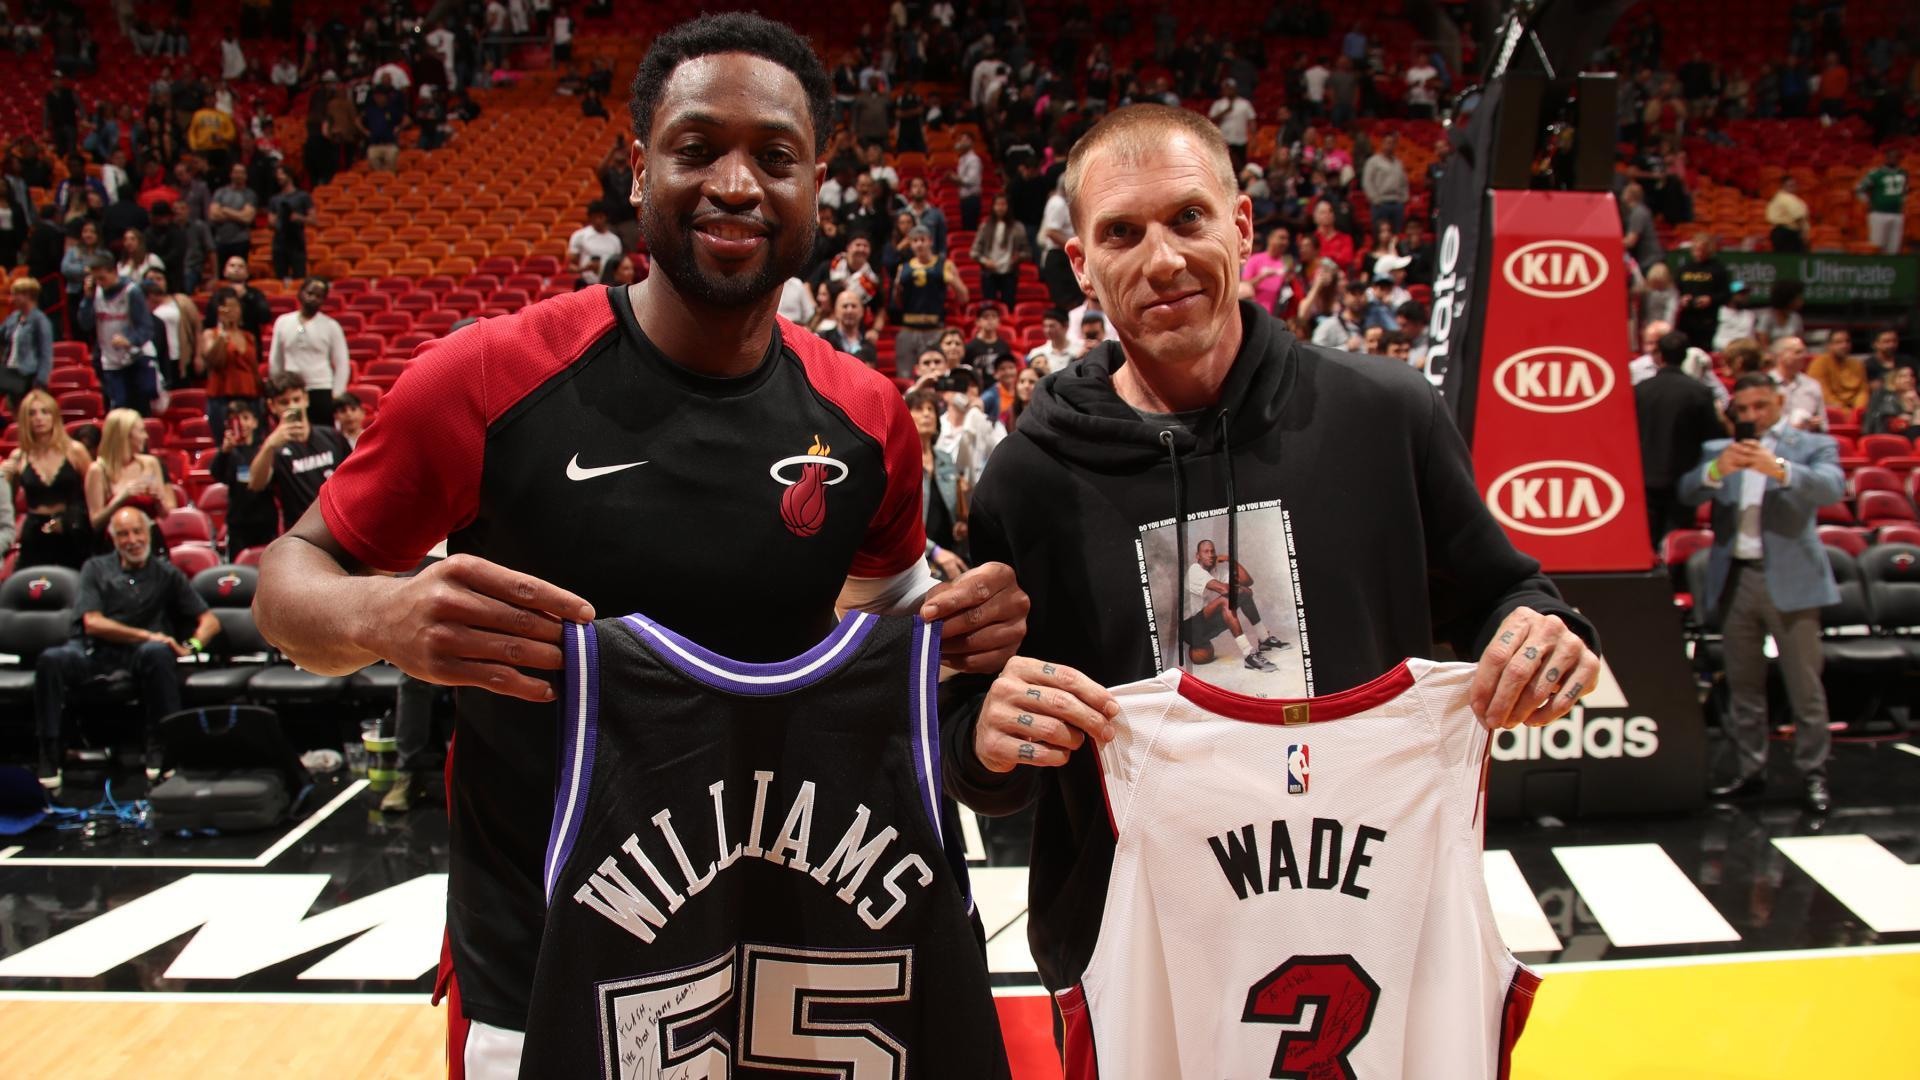 This touching Dwyane Wade tribute from Budweiser will definitely make you cry